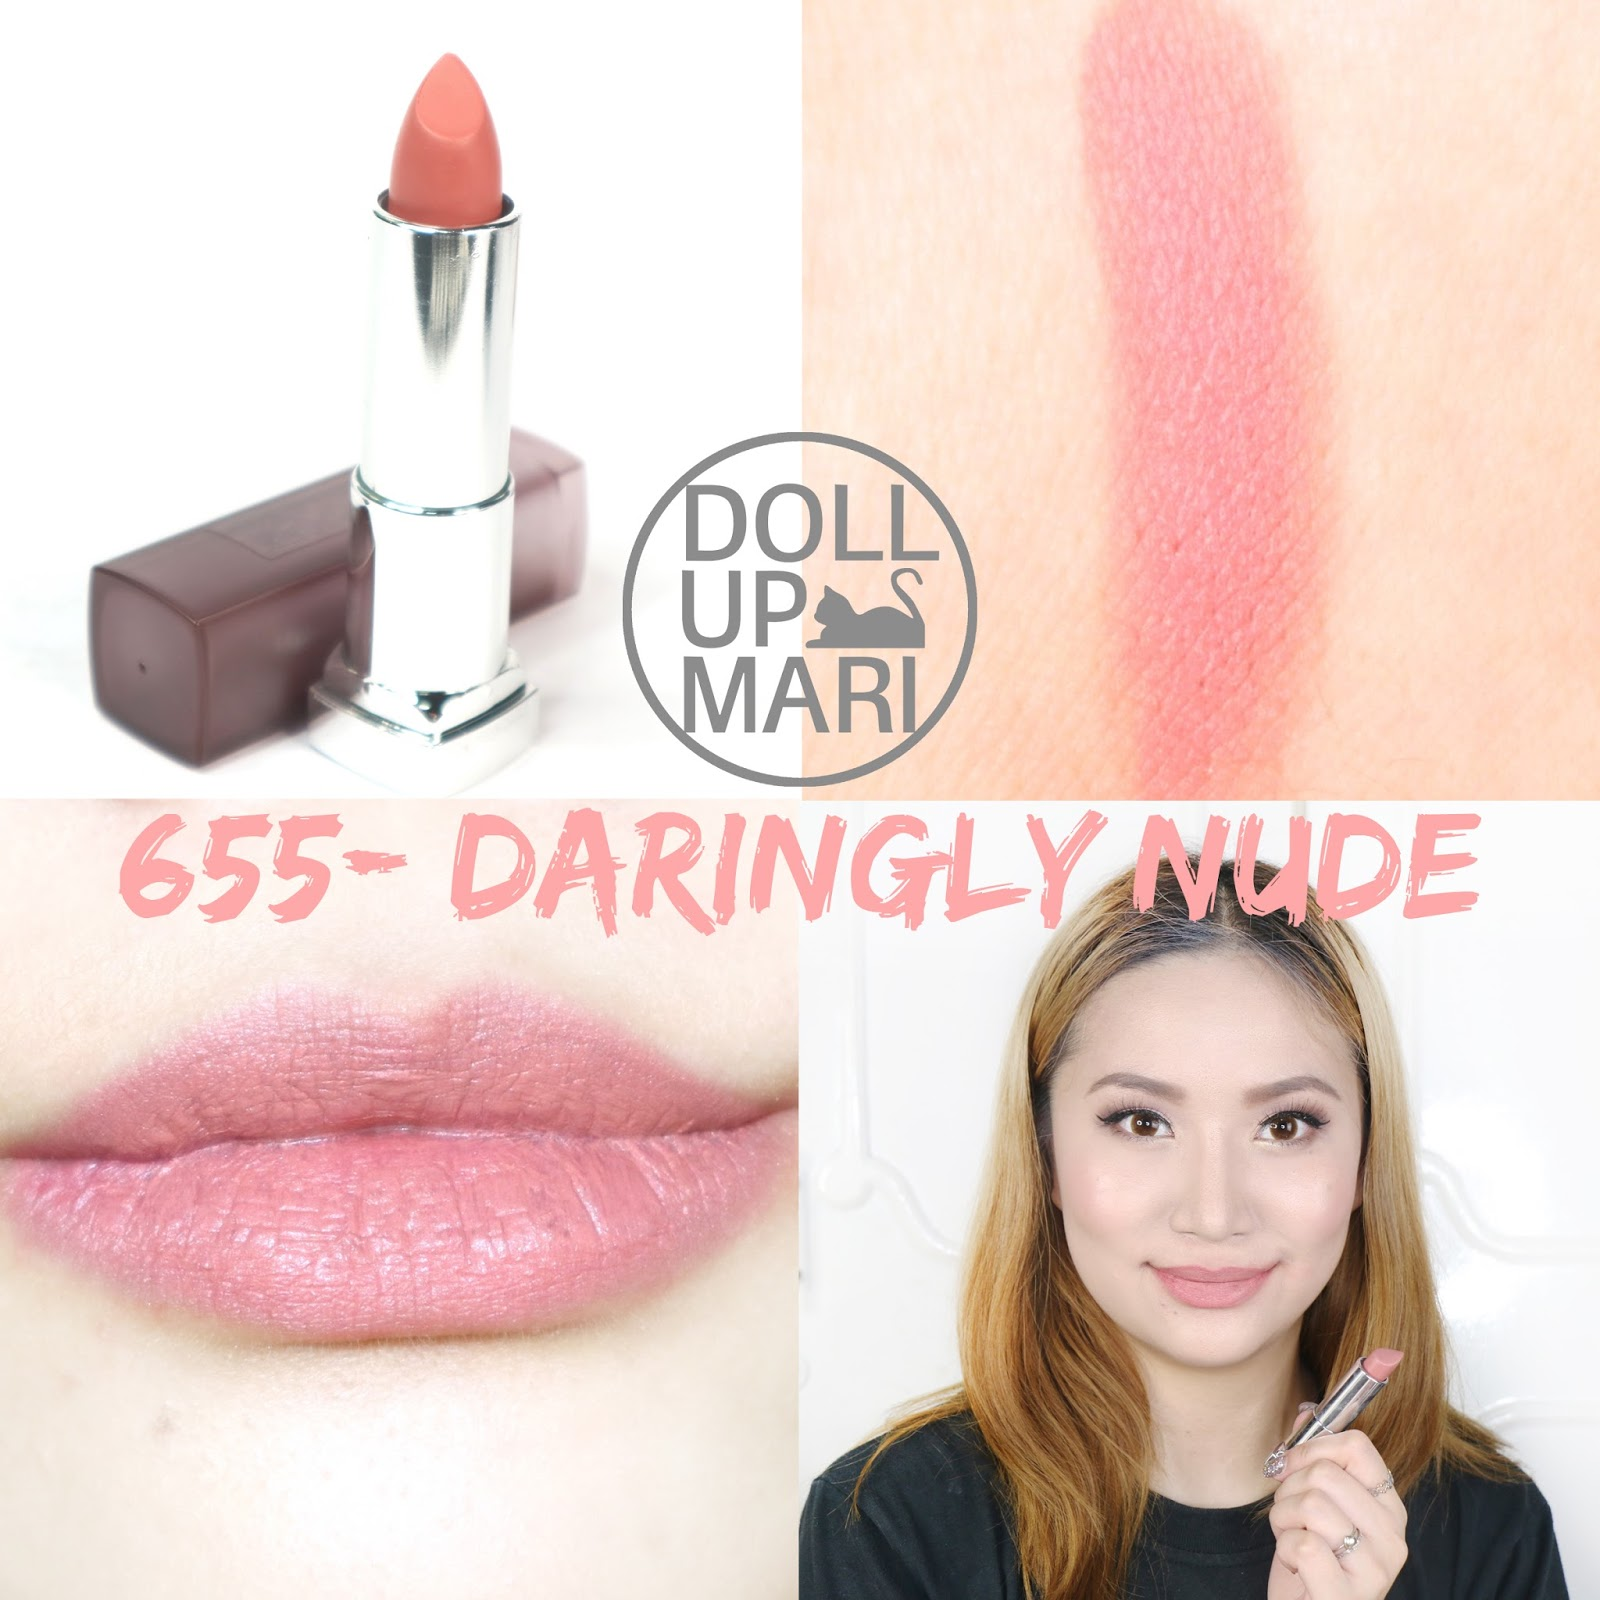 Hot Maybelline Nude Swatches Gif